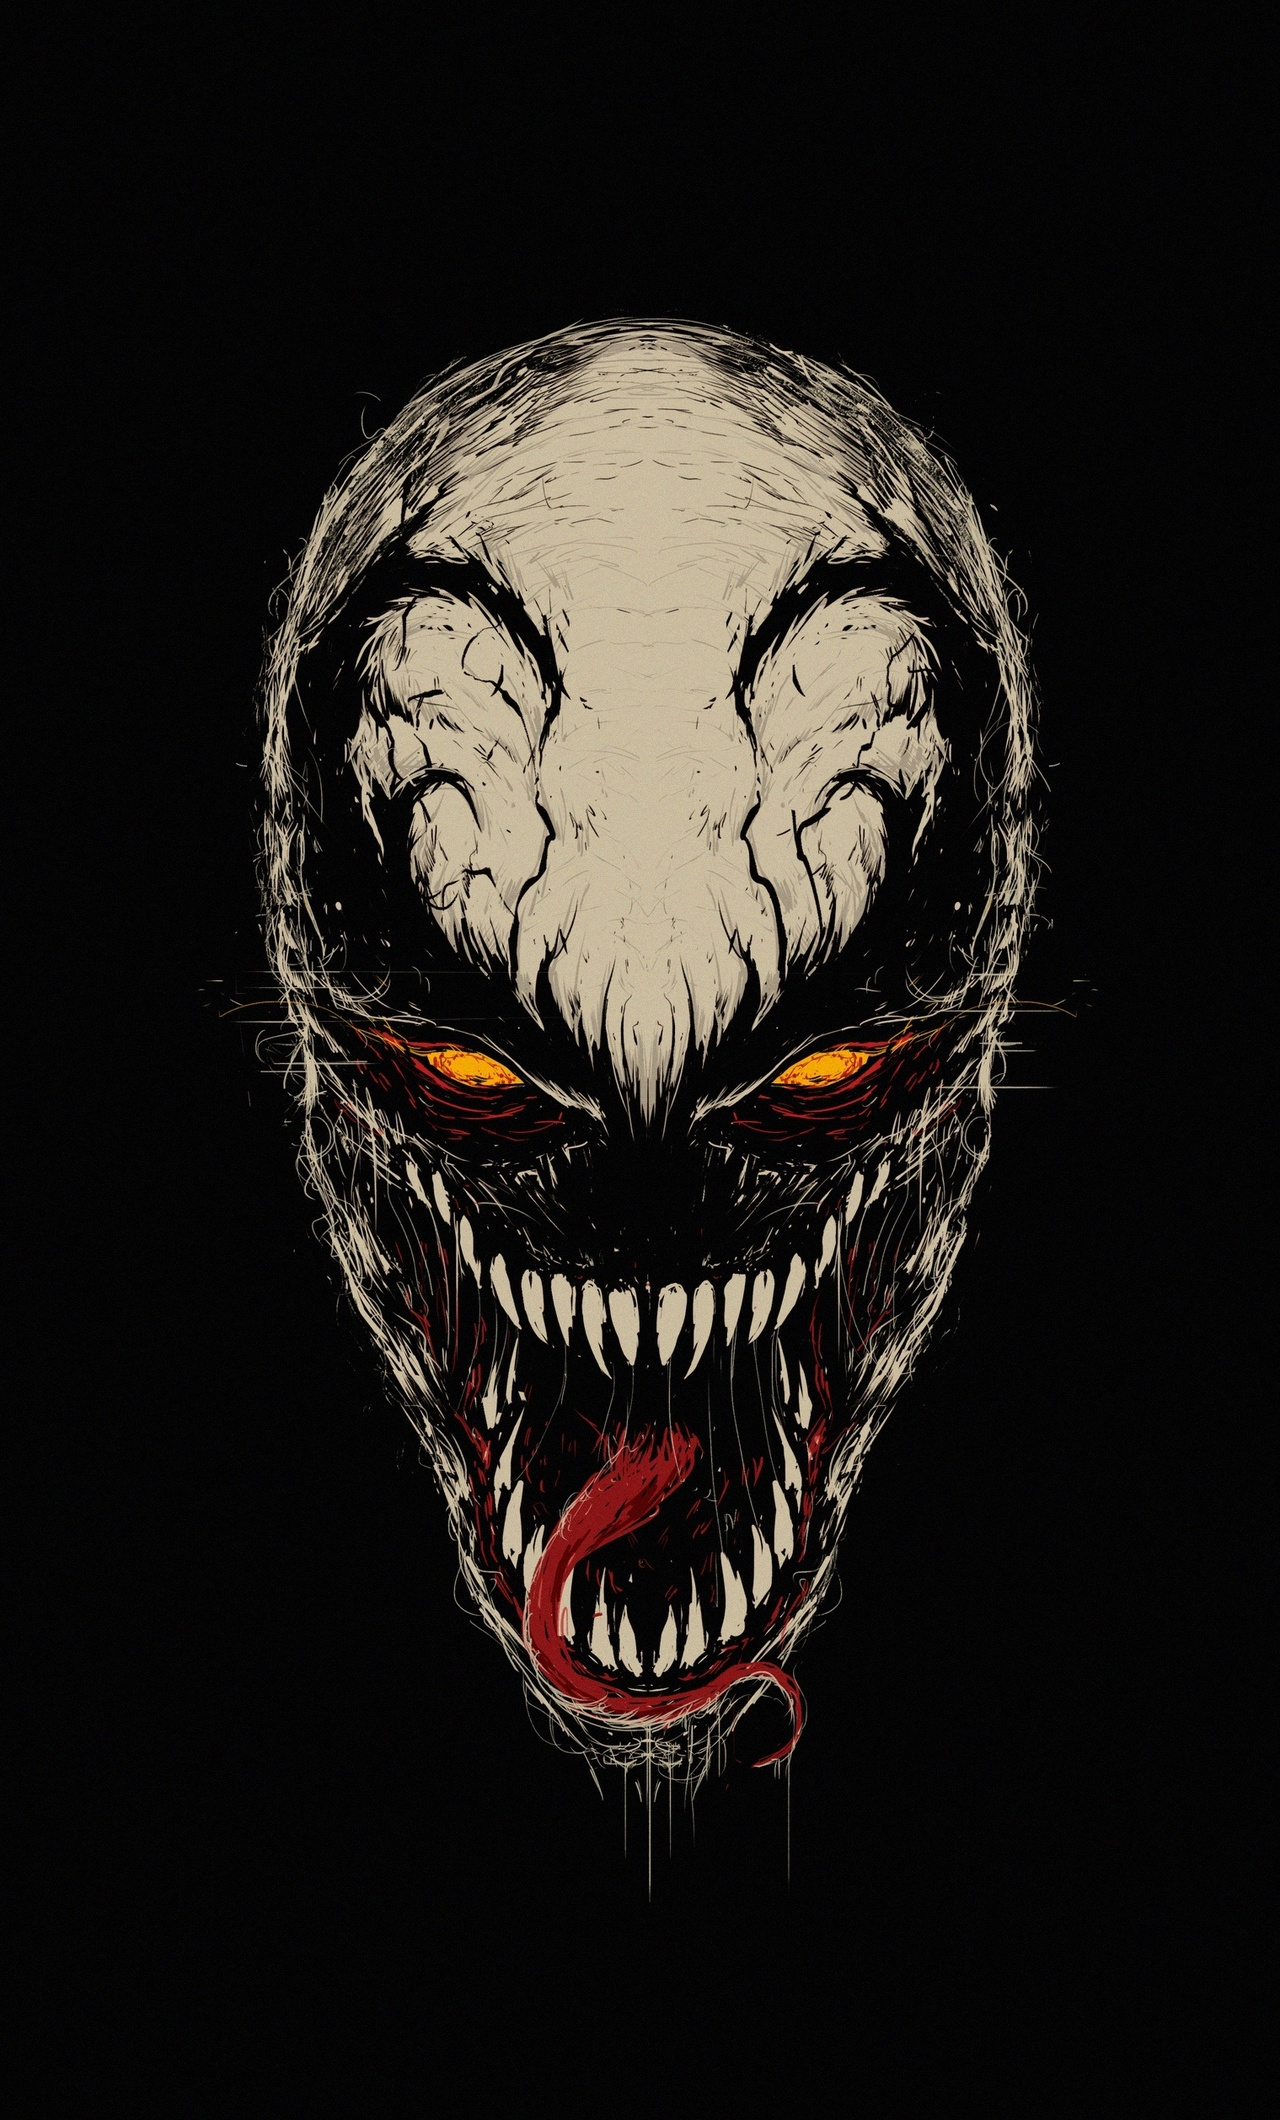 1280x2120 Anti Venom Iphone 6 Hd 4k Wallpapers Images Backgrounds Photos And Pictures